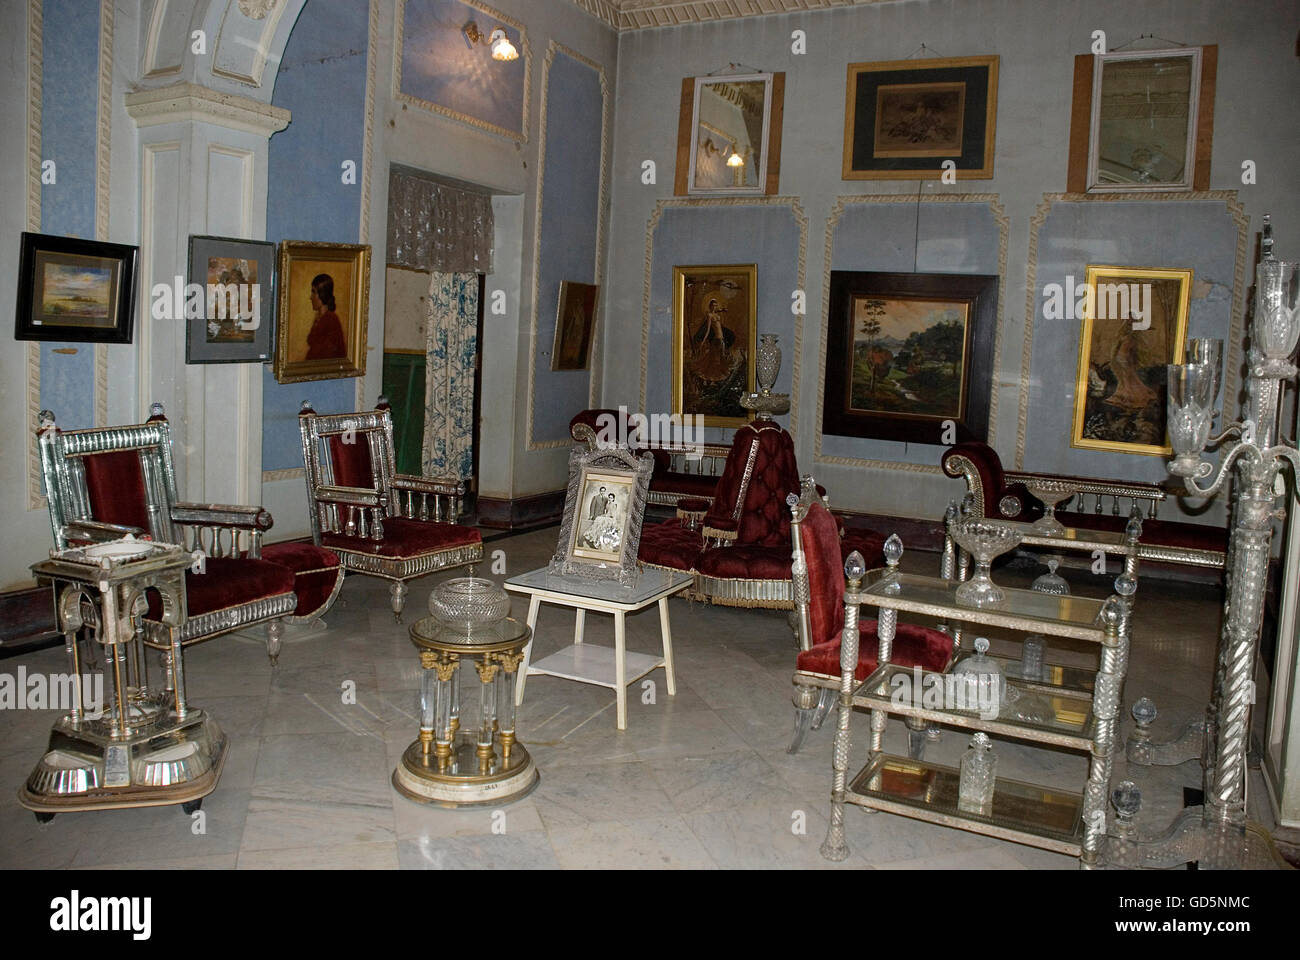 Belgium Glass Furniture Stock Photo Alamy